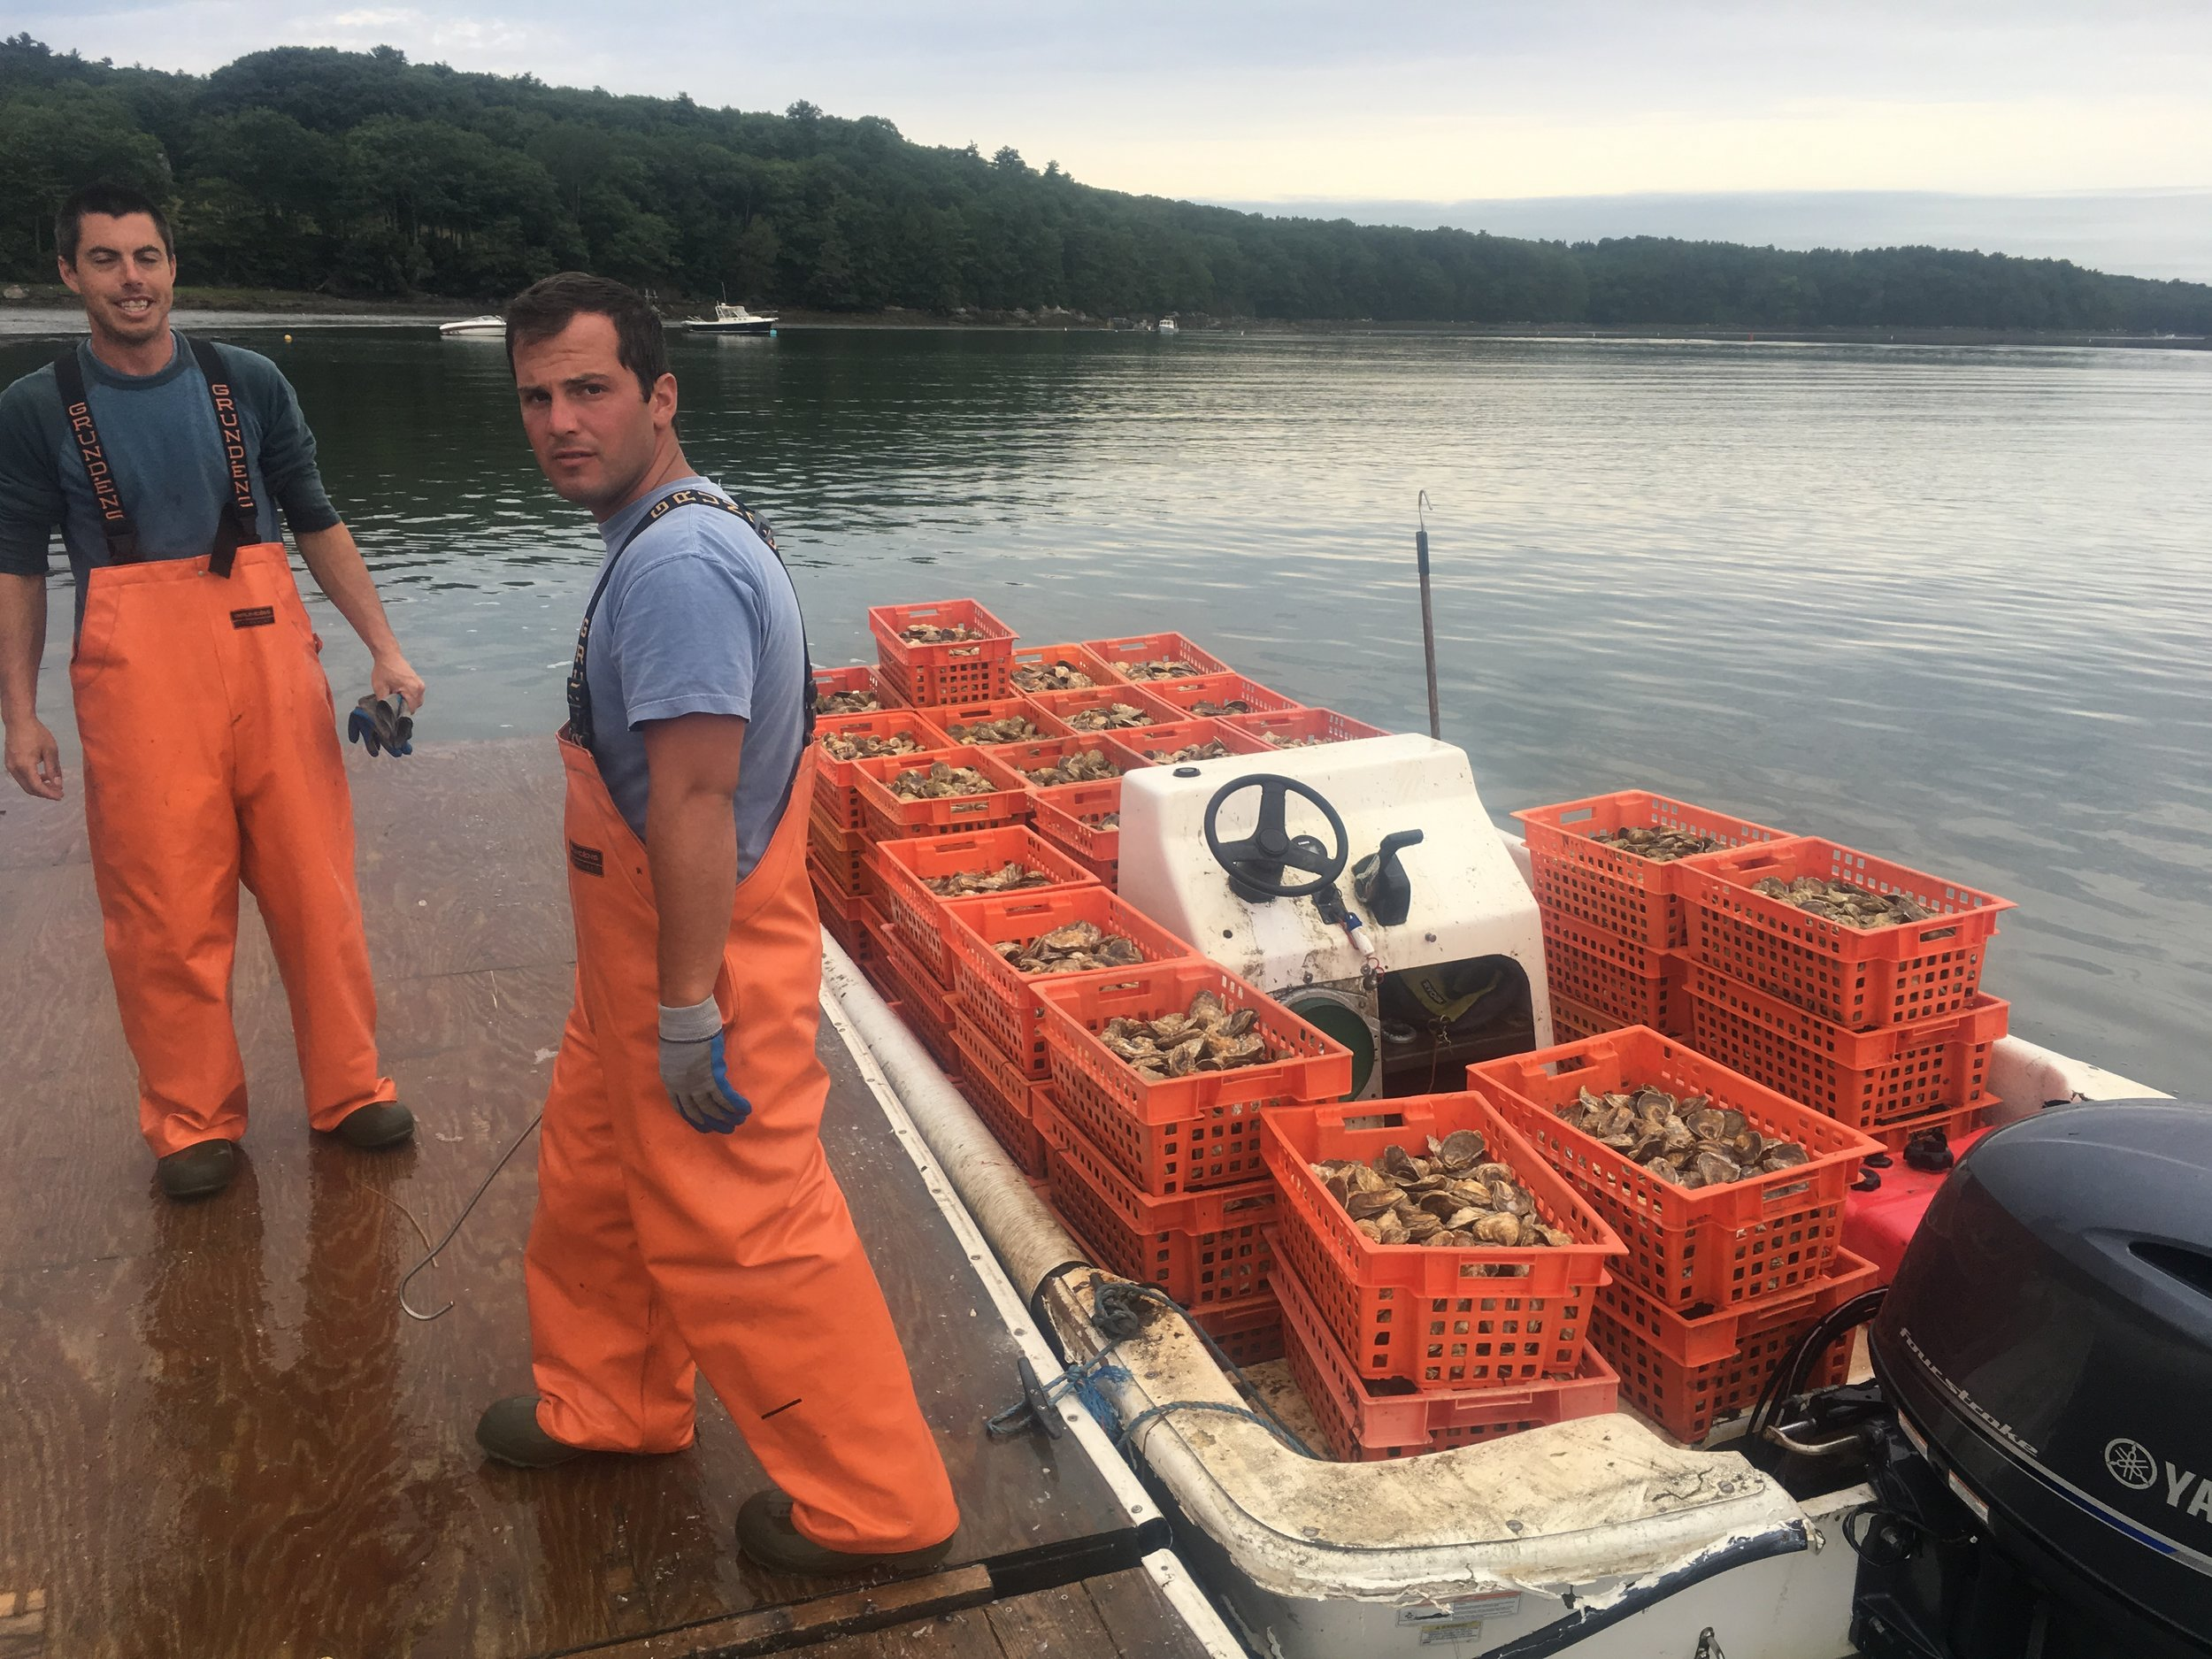 A great day of oyster farming is when…. - A great day of oyster farming is when…. the weather is good, the company is good and everything falls in place and runs smoothly.